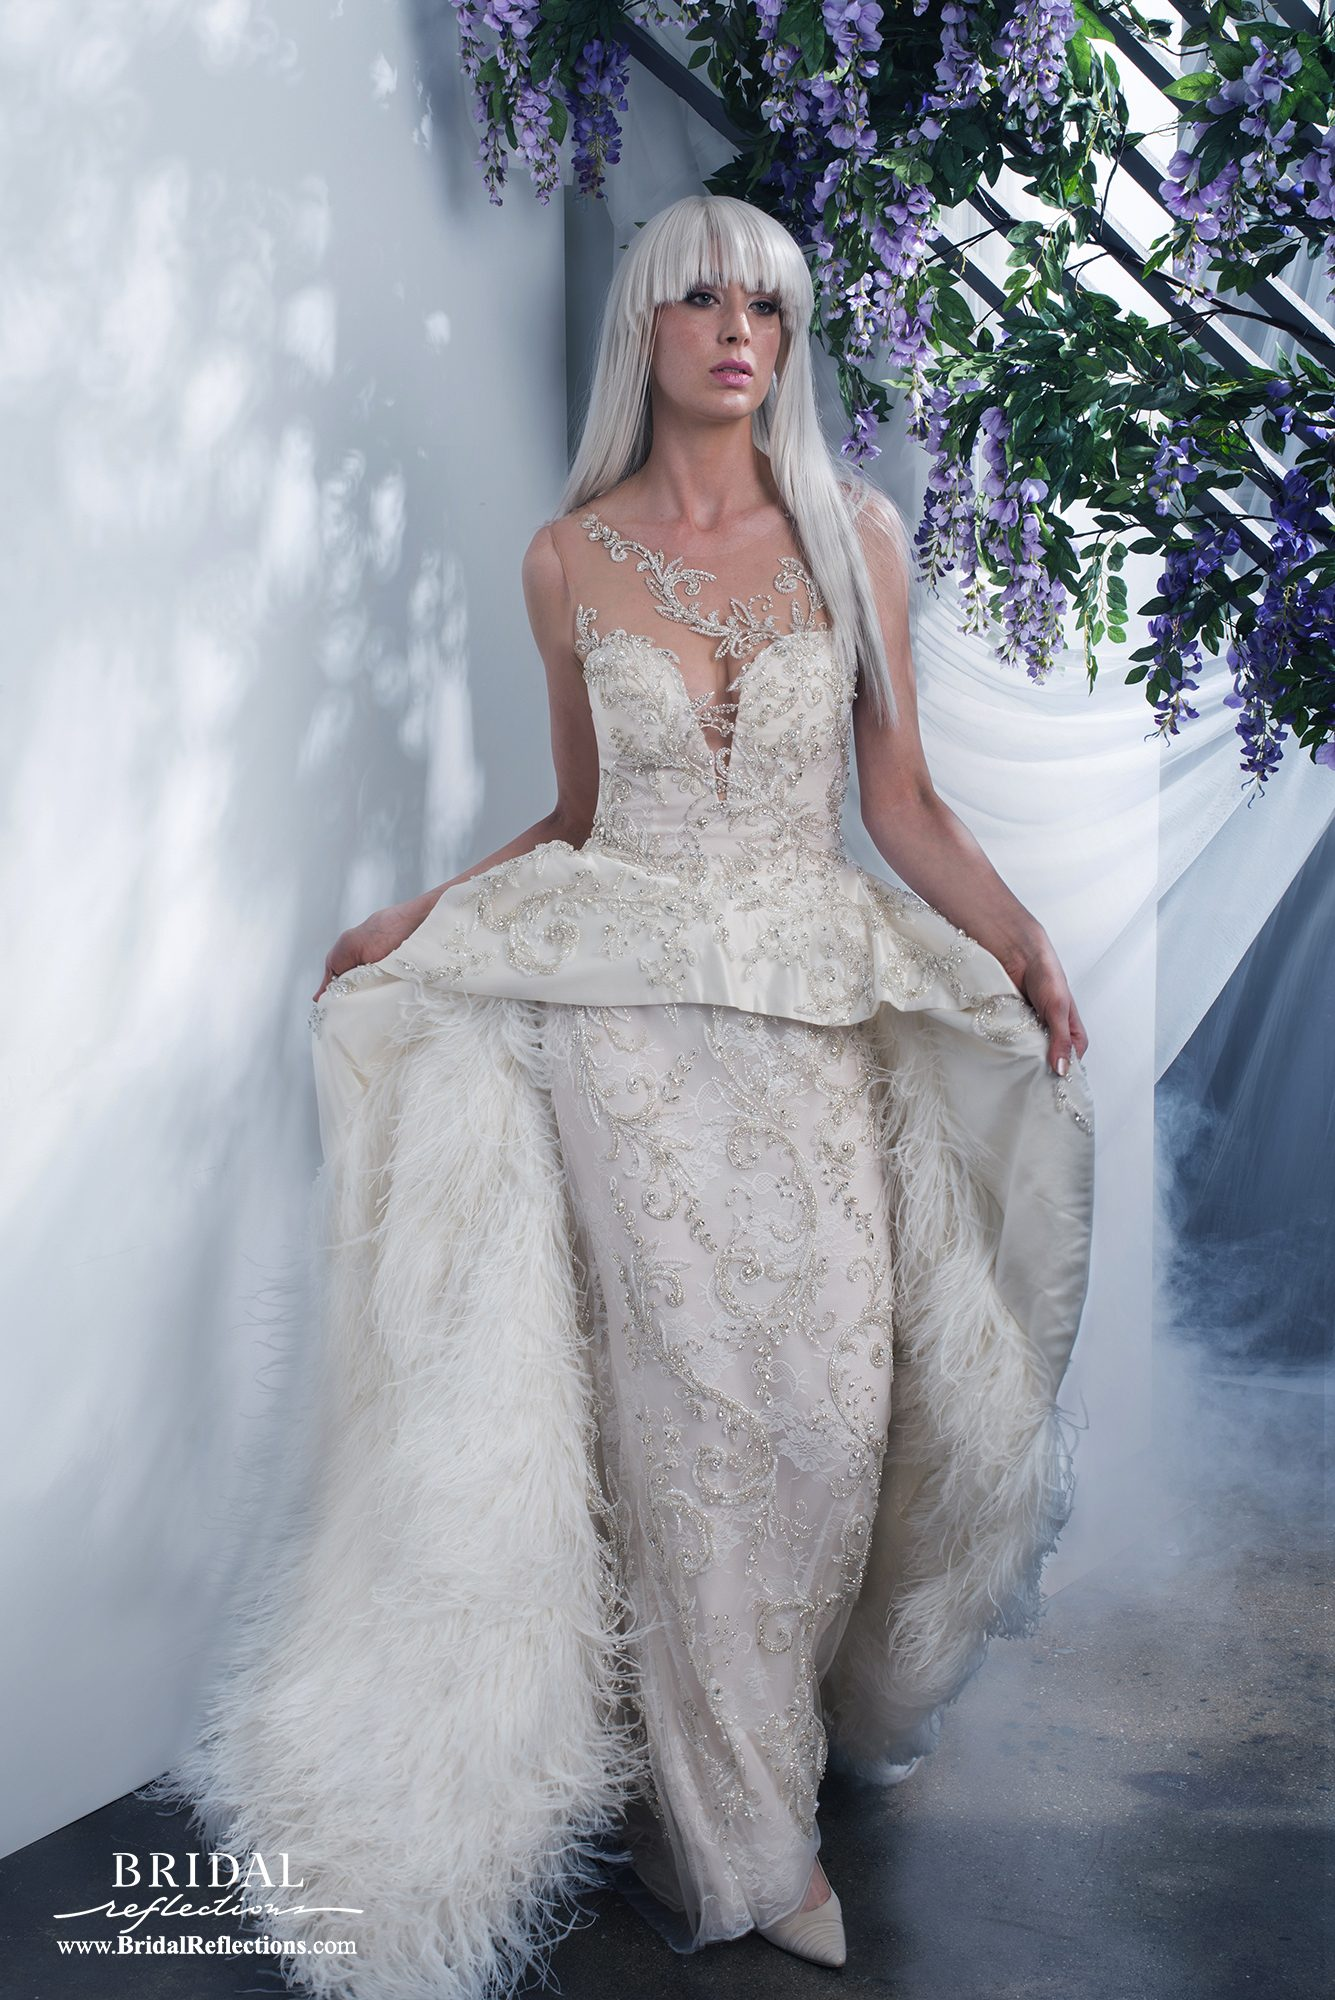 Ysa makino wedding dress and bridal gown collection for Wedding dress brands under 2000